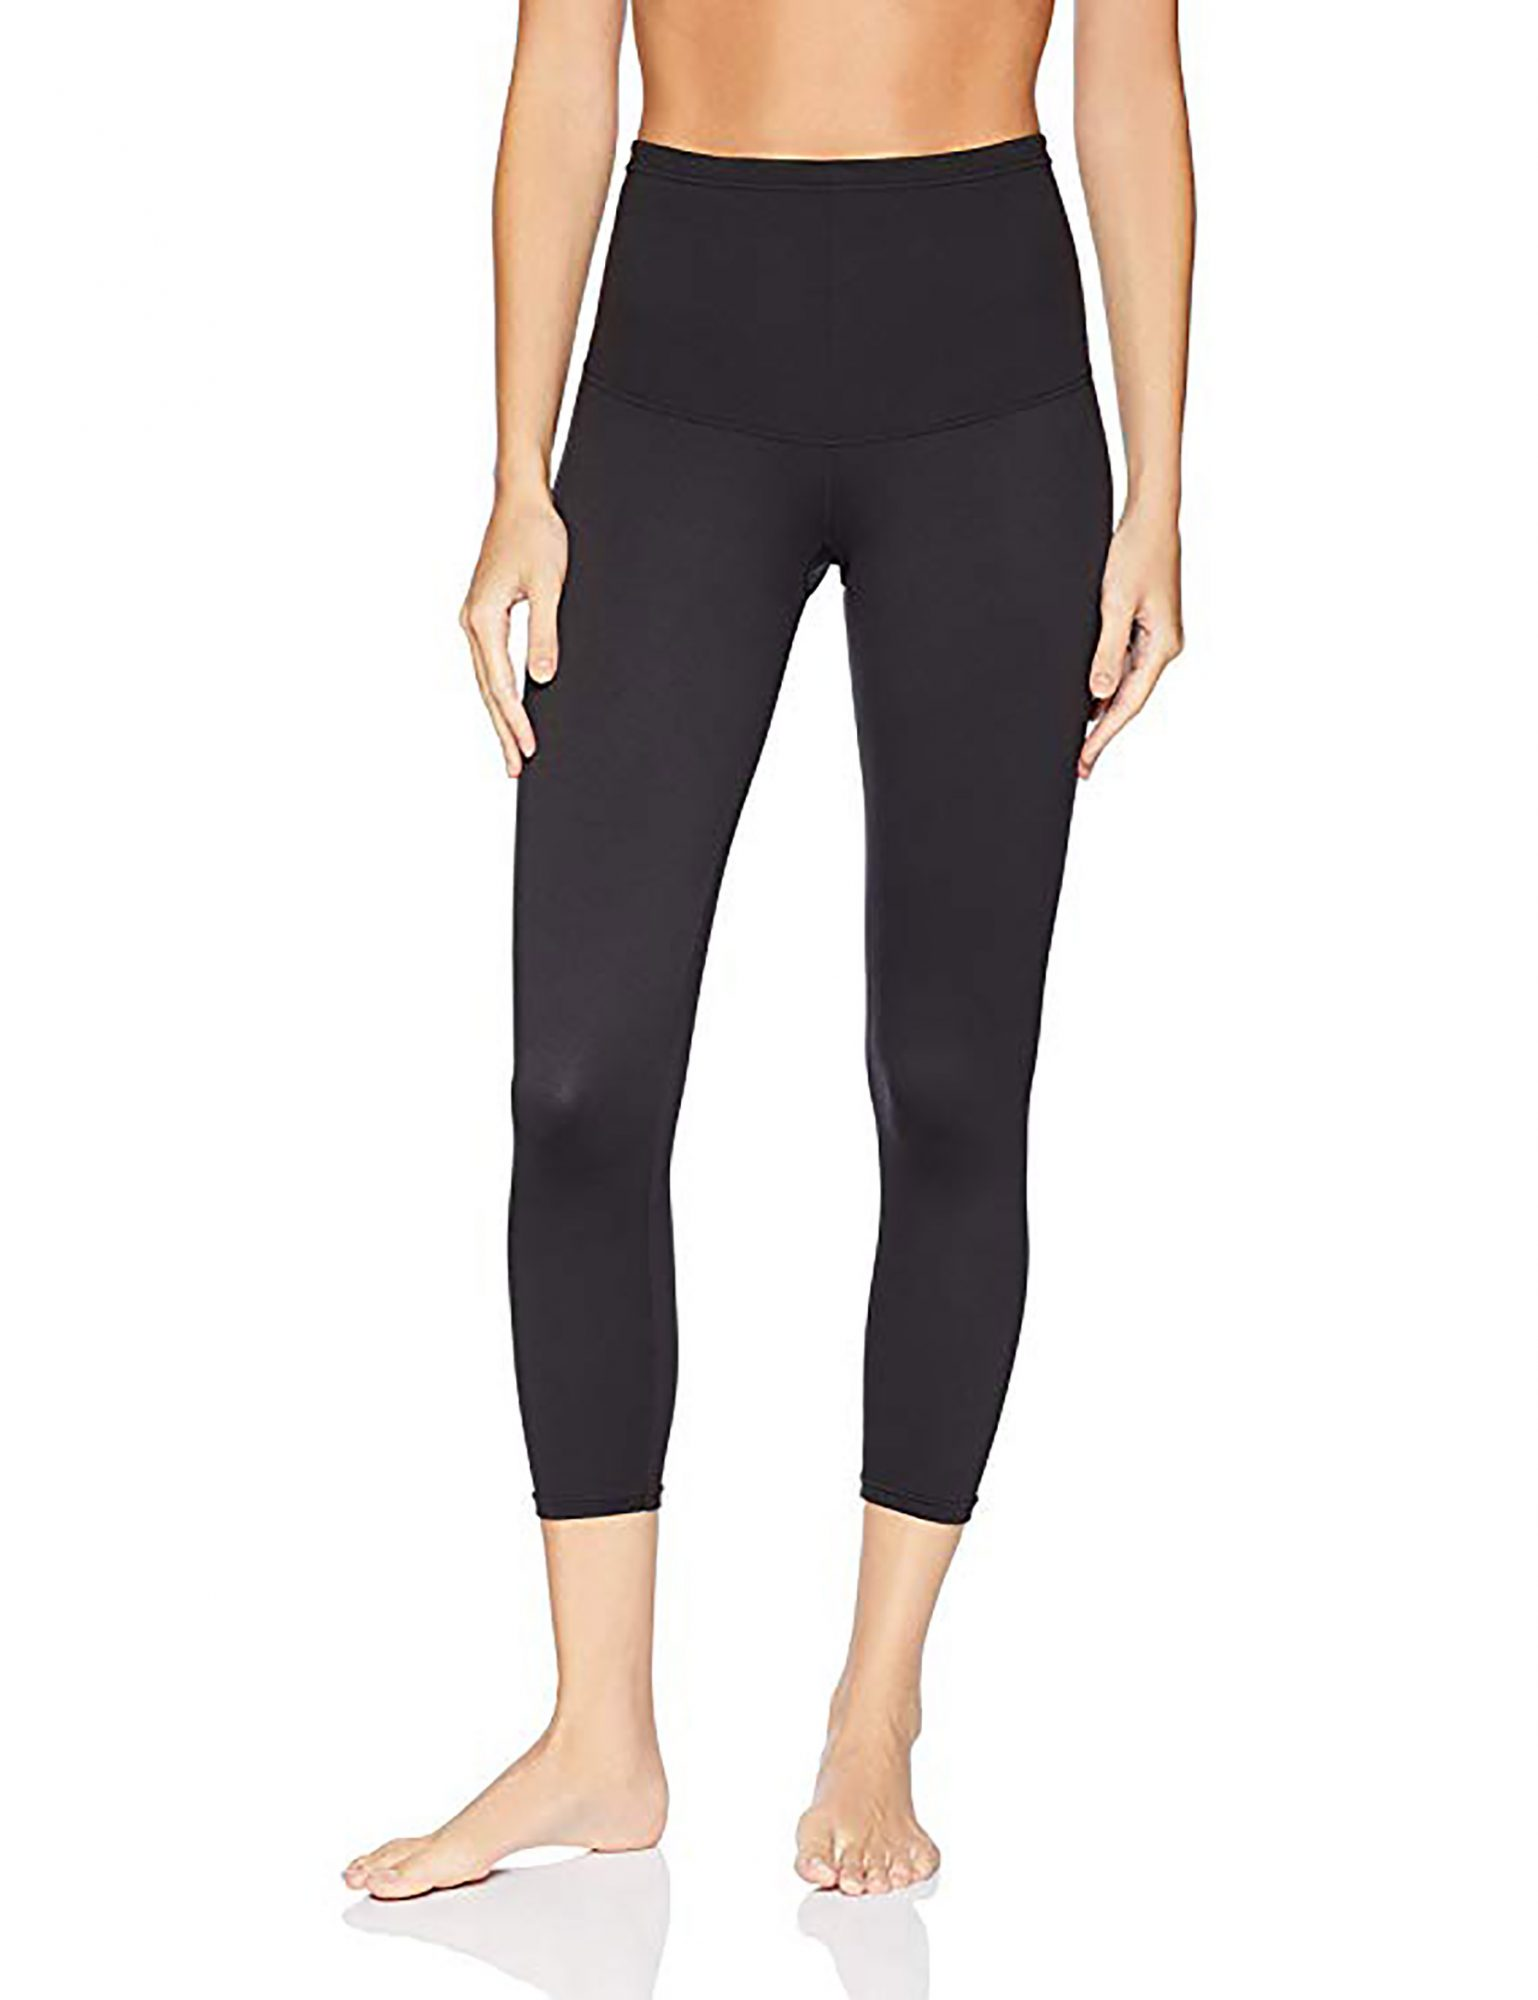 Maidenform Flexees Women's Shapewear Leggings